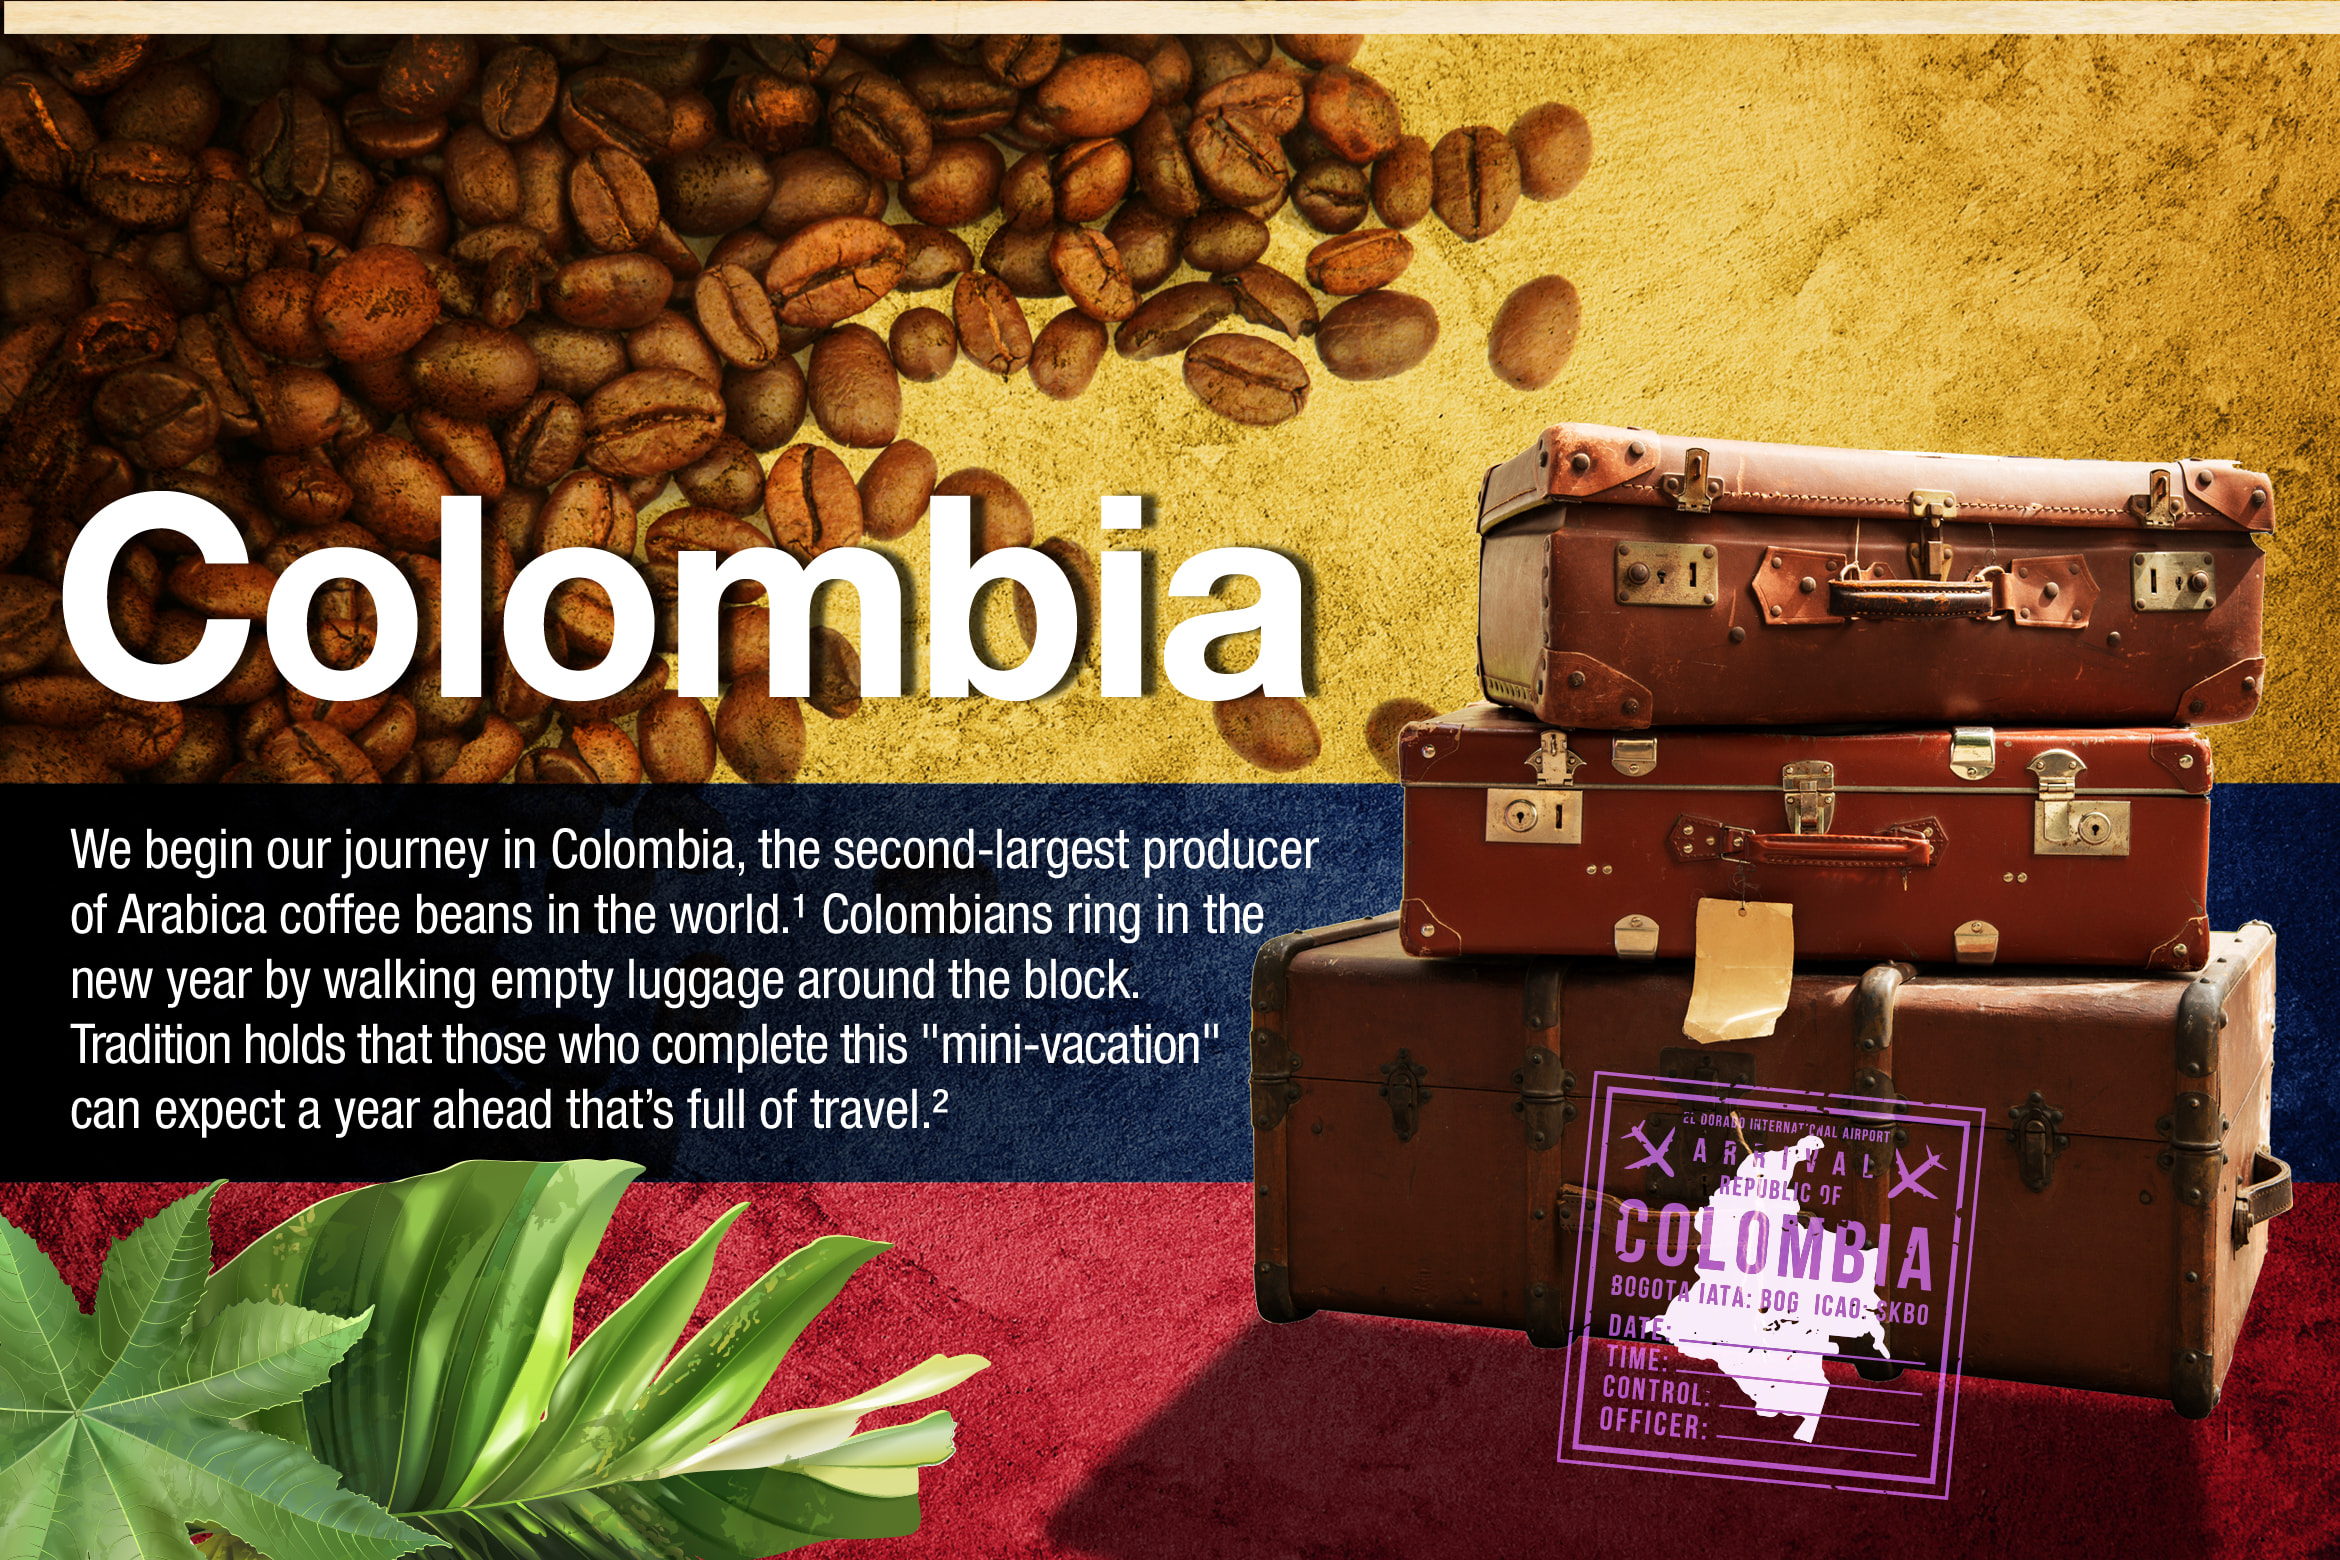 "Colombia. We begin our journey in Colombia, the second-largest producer of Arabica coffee beans in the world. 1 Colombians ring in the new year by walking empty luggage around the block. Tradition holds that those who complete this ""mini-vacation"" can expect a year ahead that's full of travel. 2"